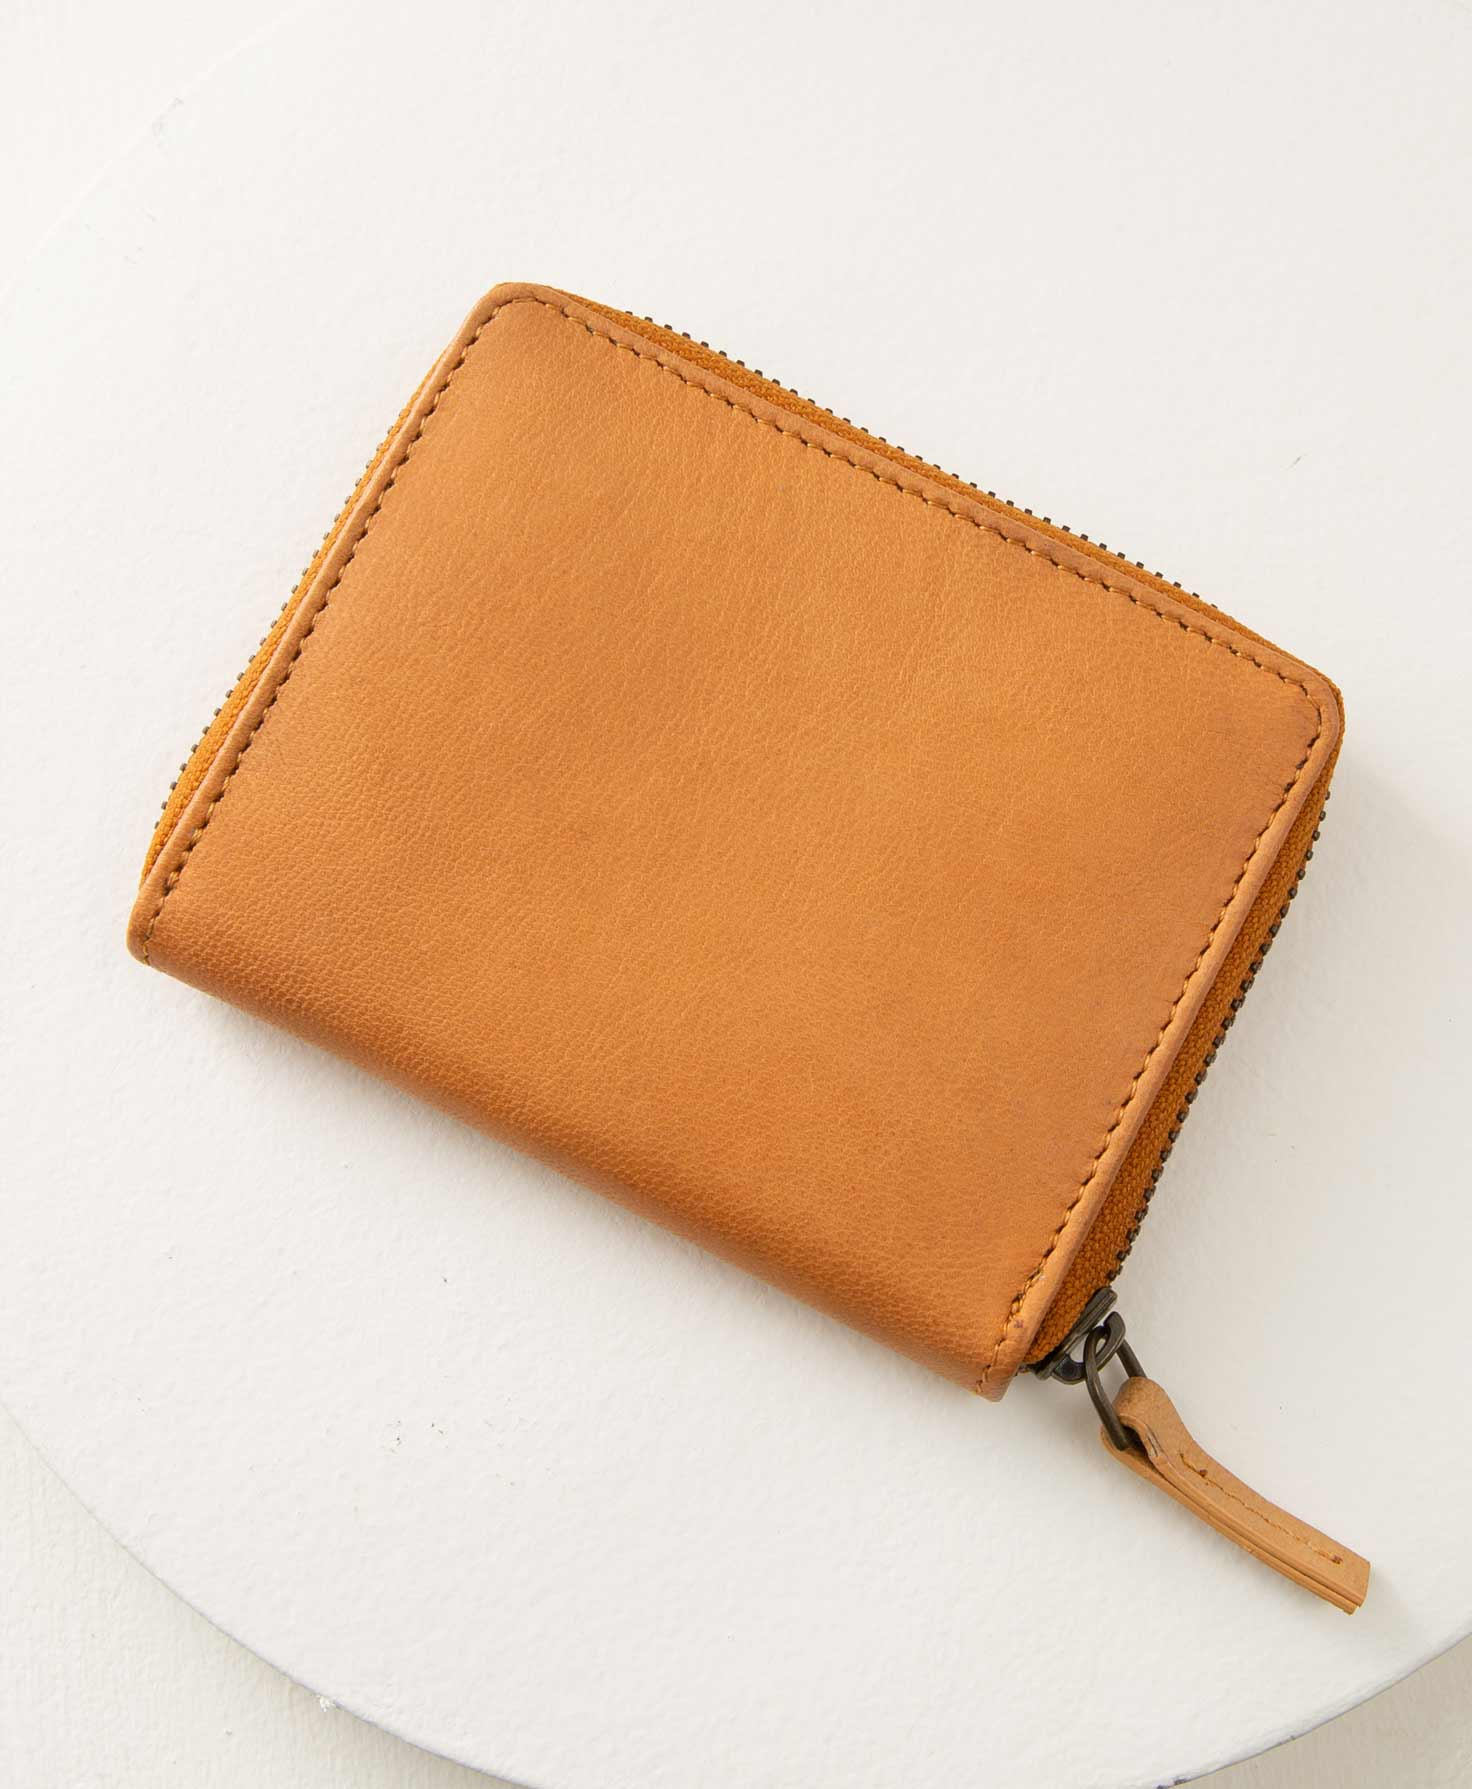 The Essential Leather Wallet rests on its side on a white surface. It is a simple, roughly square-shaped wallet that is slightly wider than it is tall. It is composed entirely of matte, caramel-colored leather. A bronze zipper wraps around the sides and top of the wallet and is finished with a leather zip pull.